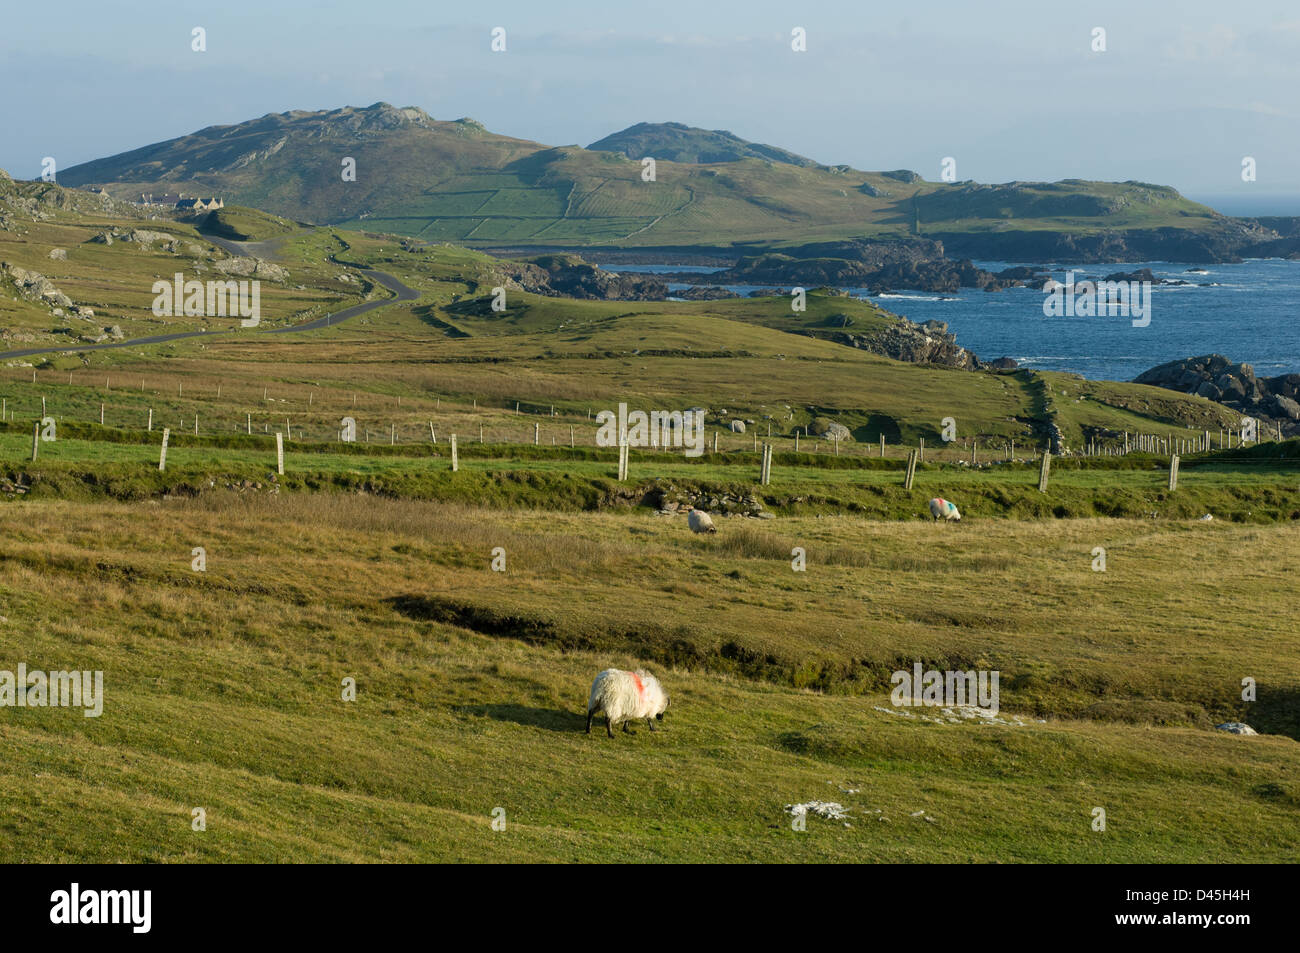 Sheep on top of remnants of stone age fortification on top of cliffs on the rugged coastline of Achill Island, Westport, - Stock Image